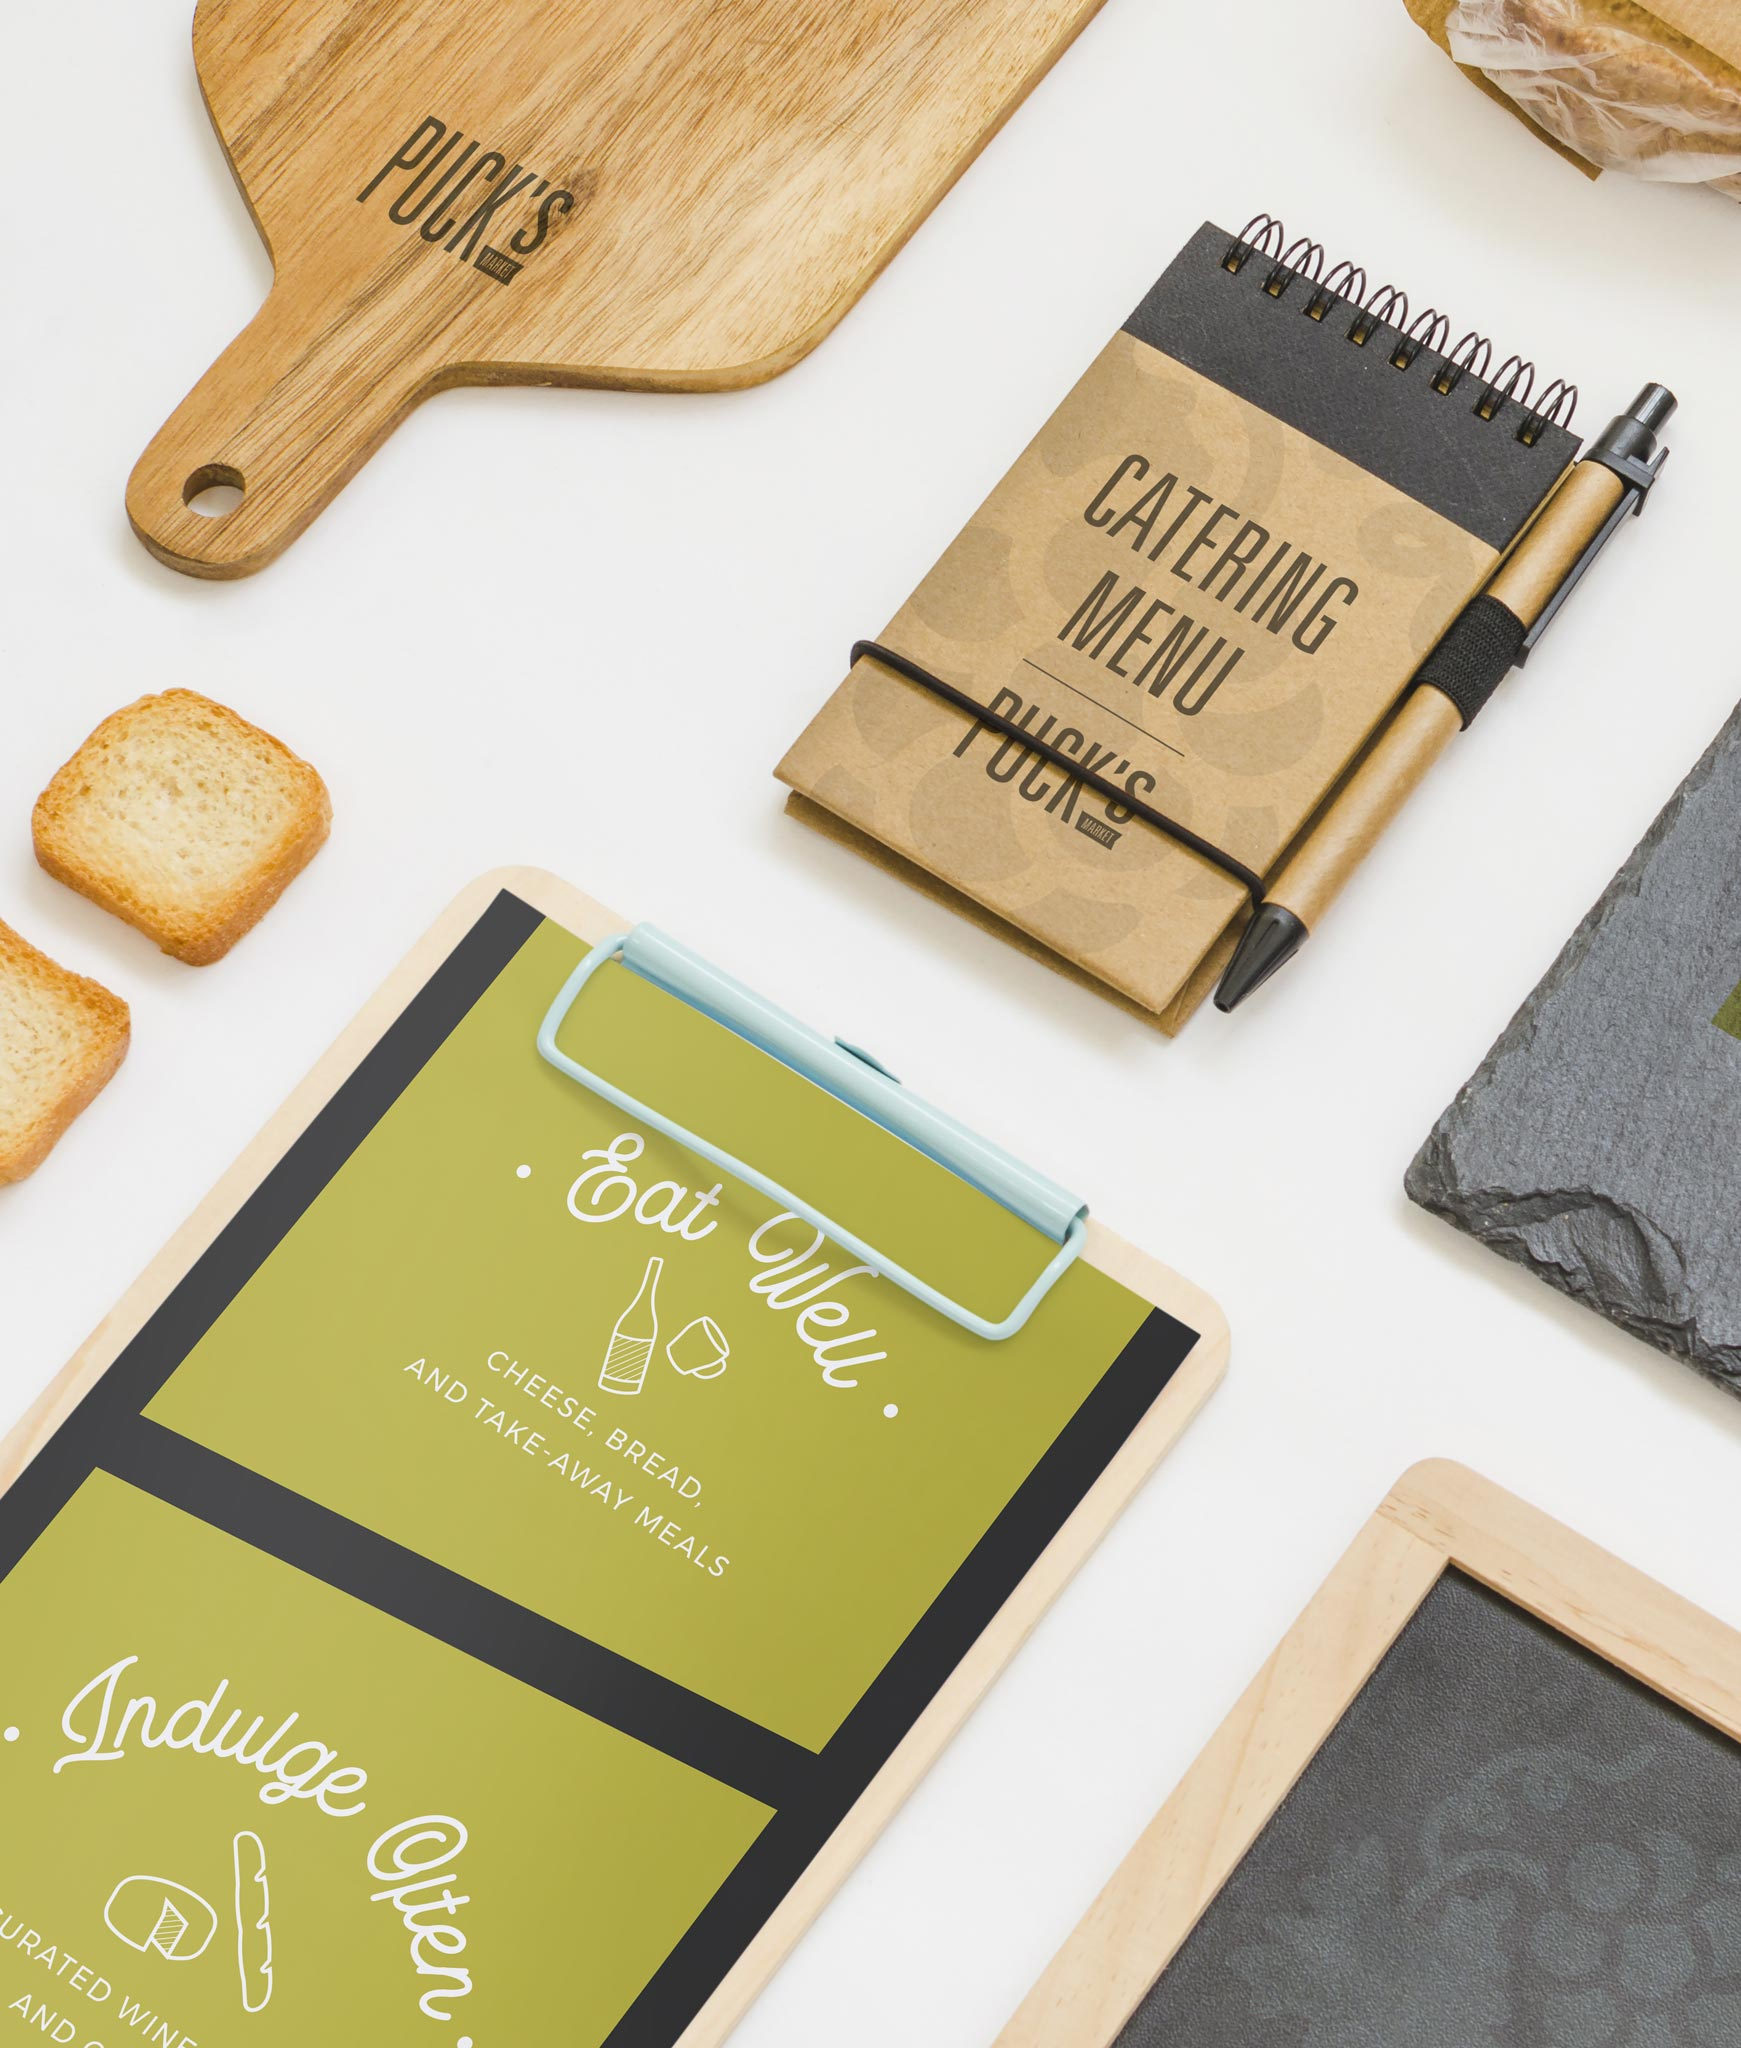 cutting board, menu, and clipboard branded for Puck's Market